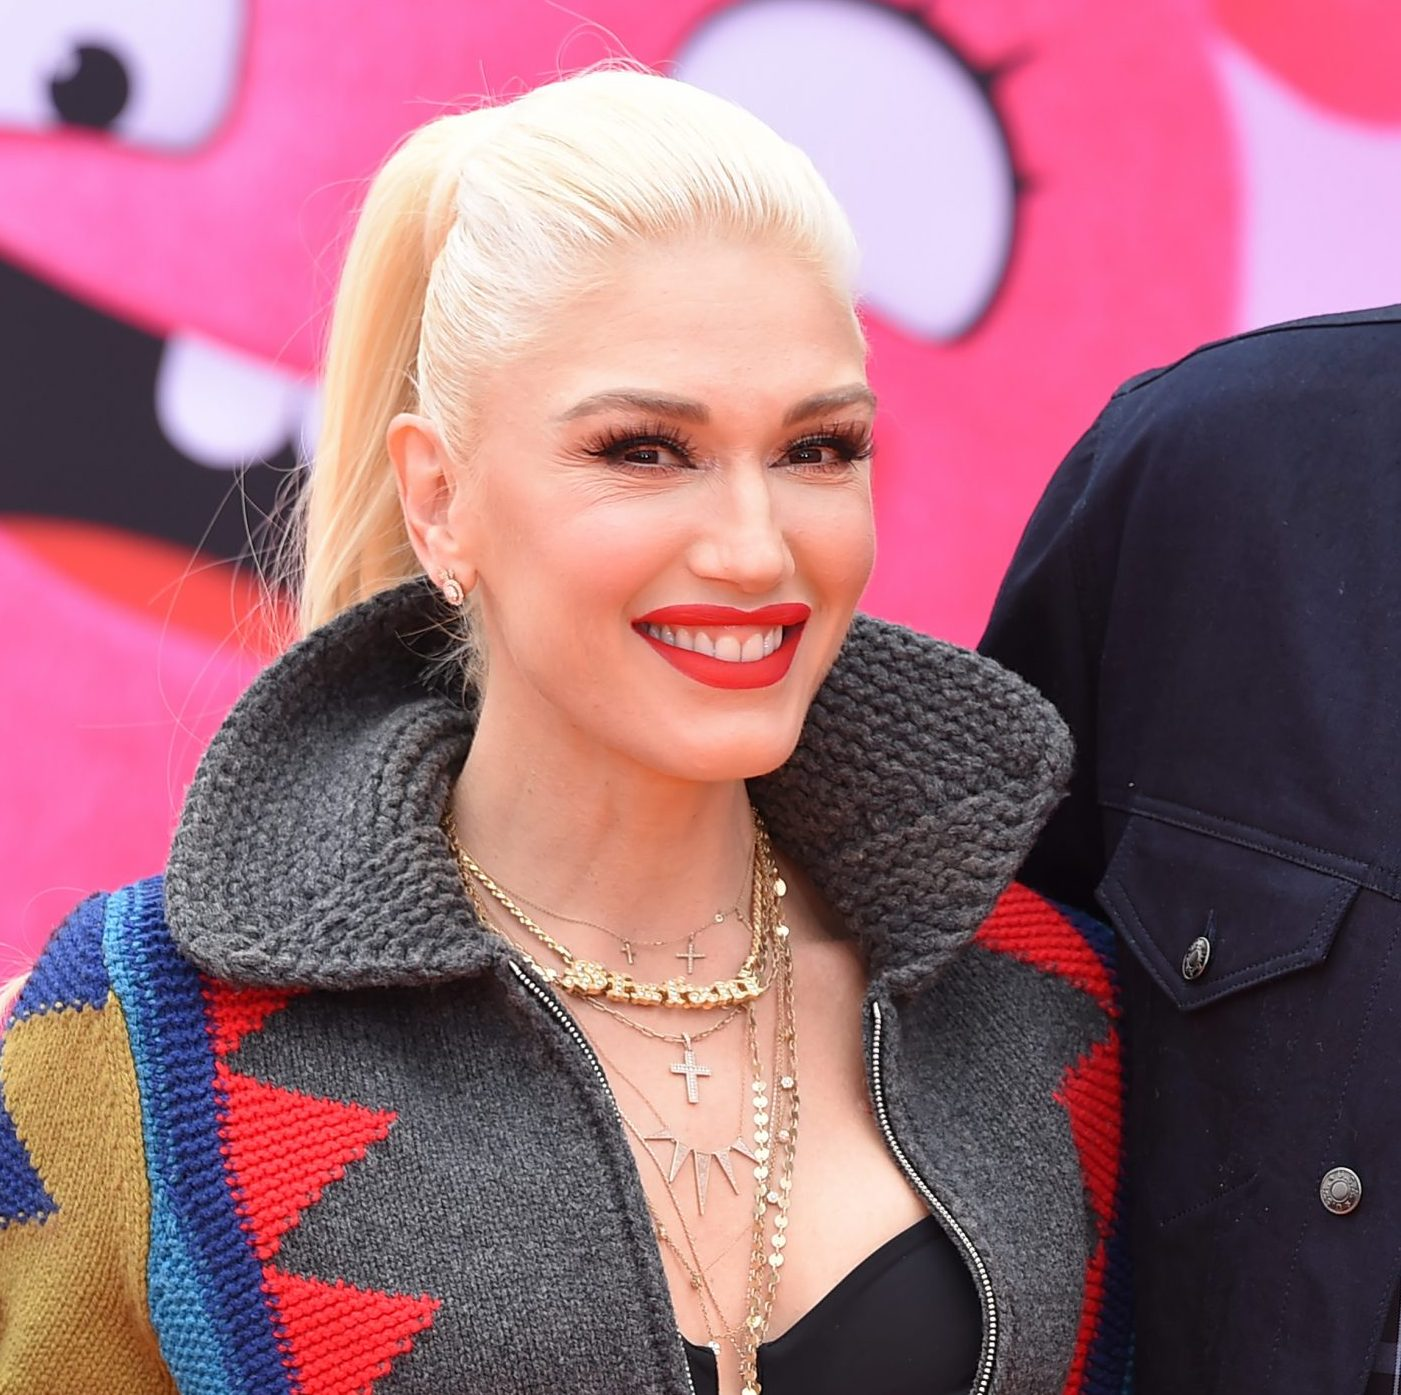 Gwen Stefani smiles at a red carpet event. She has platinum blonde hair thats tied back in a pony tail. She wears bright red lipstick.